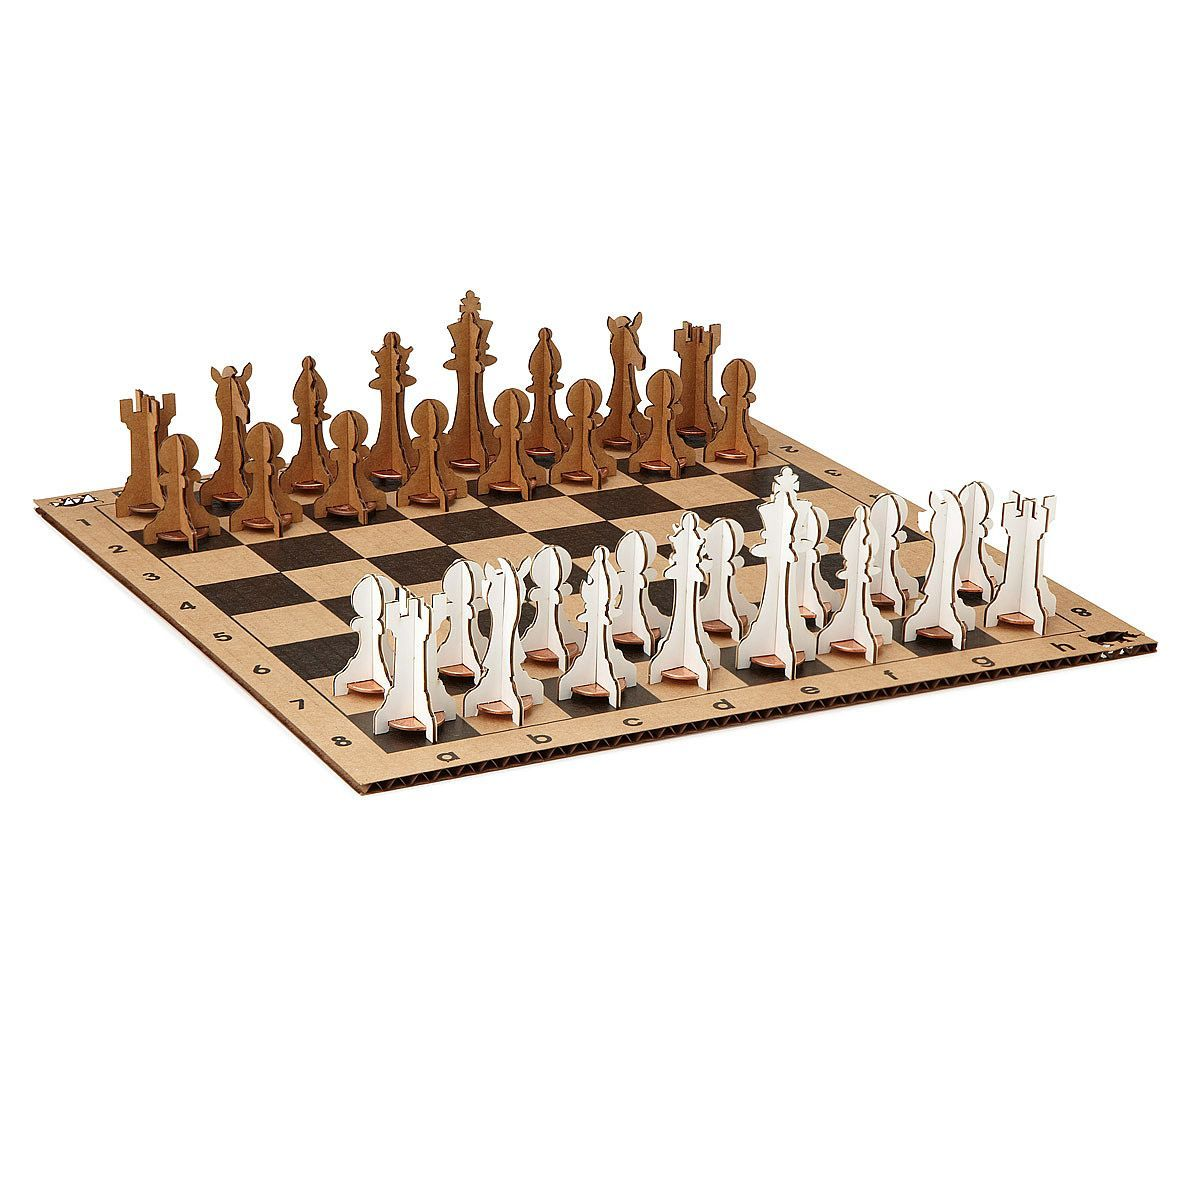 Penny Chess Set recycled cardboard, sustainable, chess